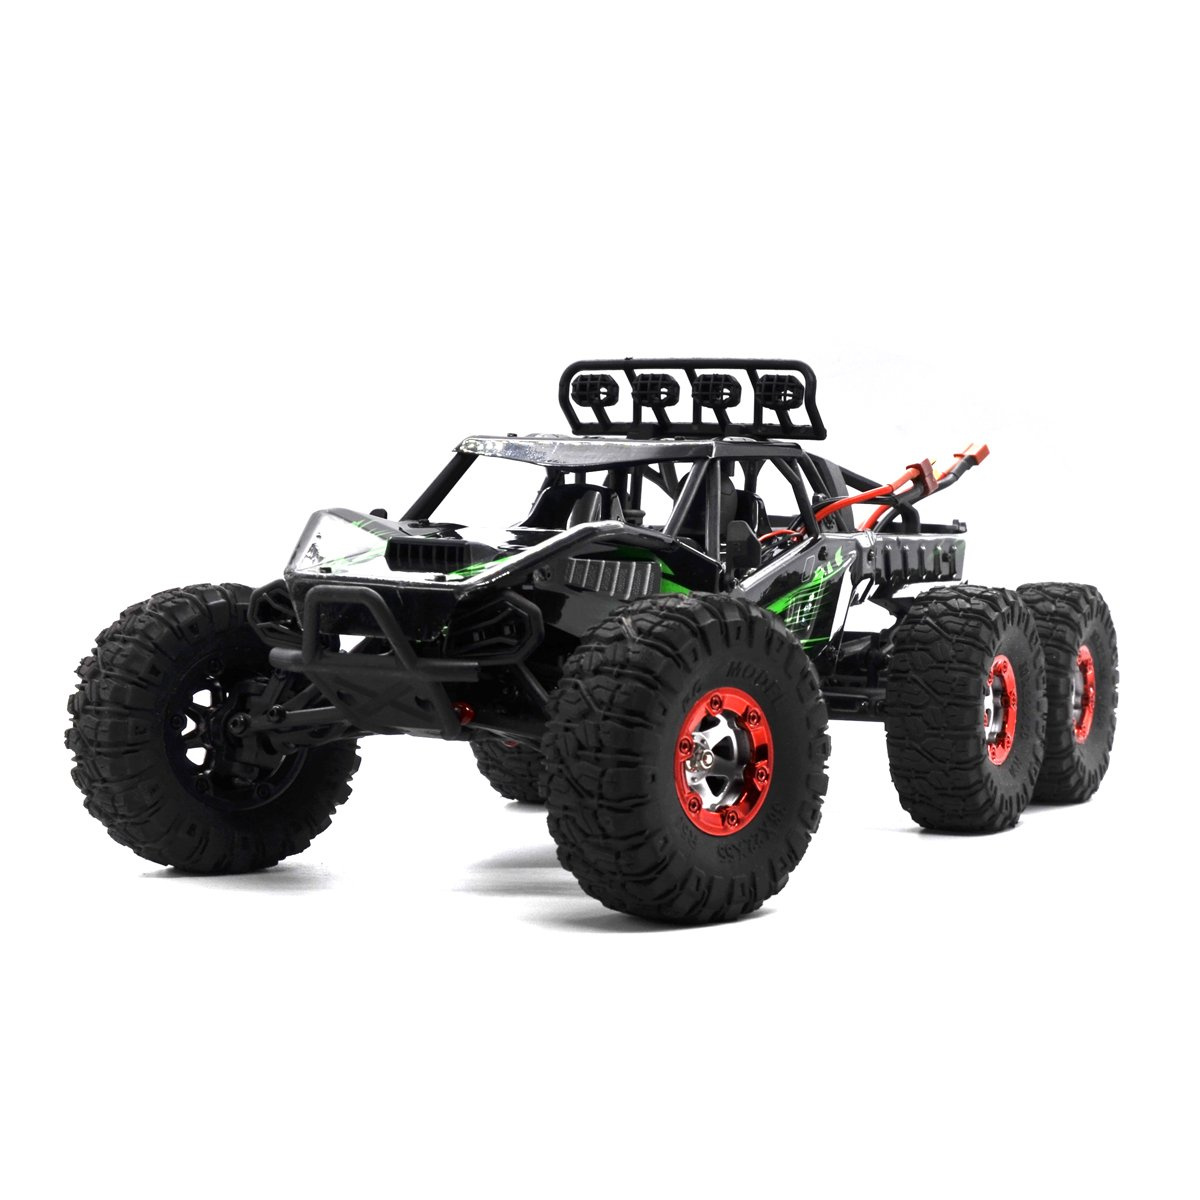 Virhuck V02 1 12 Scale 6wd High Speed Rc Truck With Tips On Powering Servos Receivers Radios And Vehicles Lipos Brushless Motor 24ghz Off Road Vehicle Rock Crawler Car Racing 37mph Toys Games